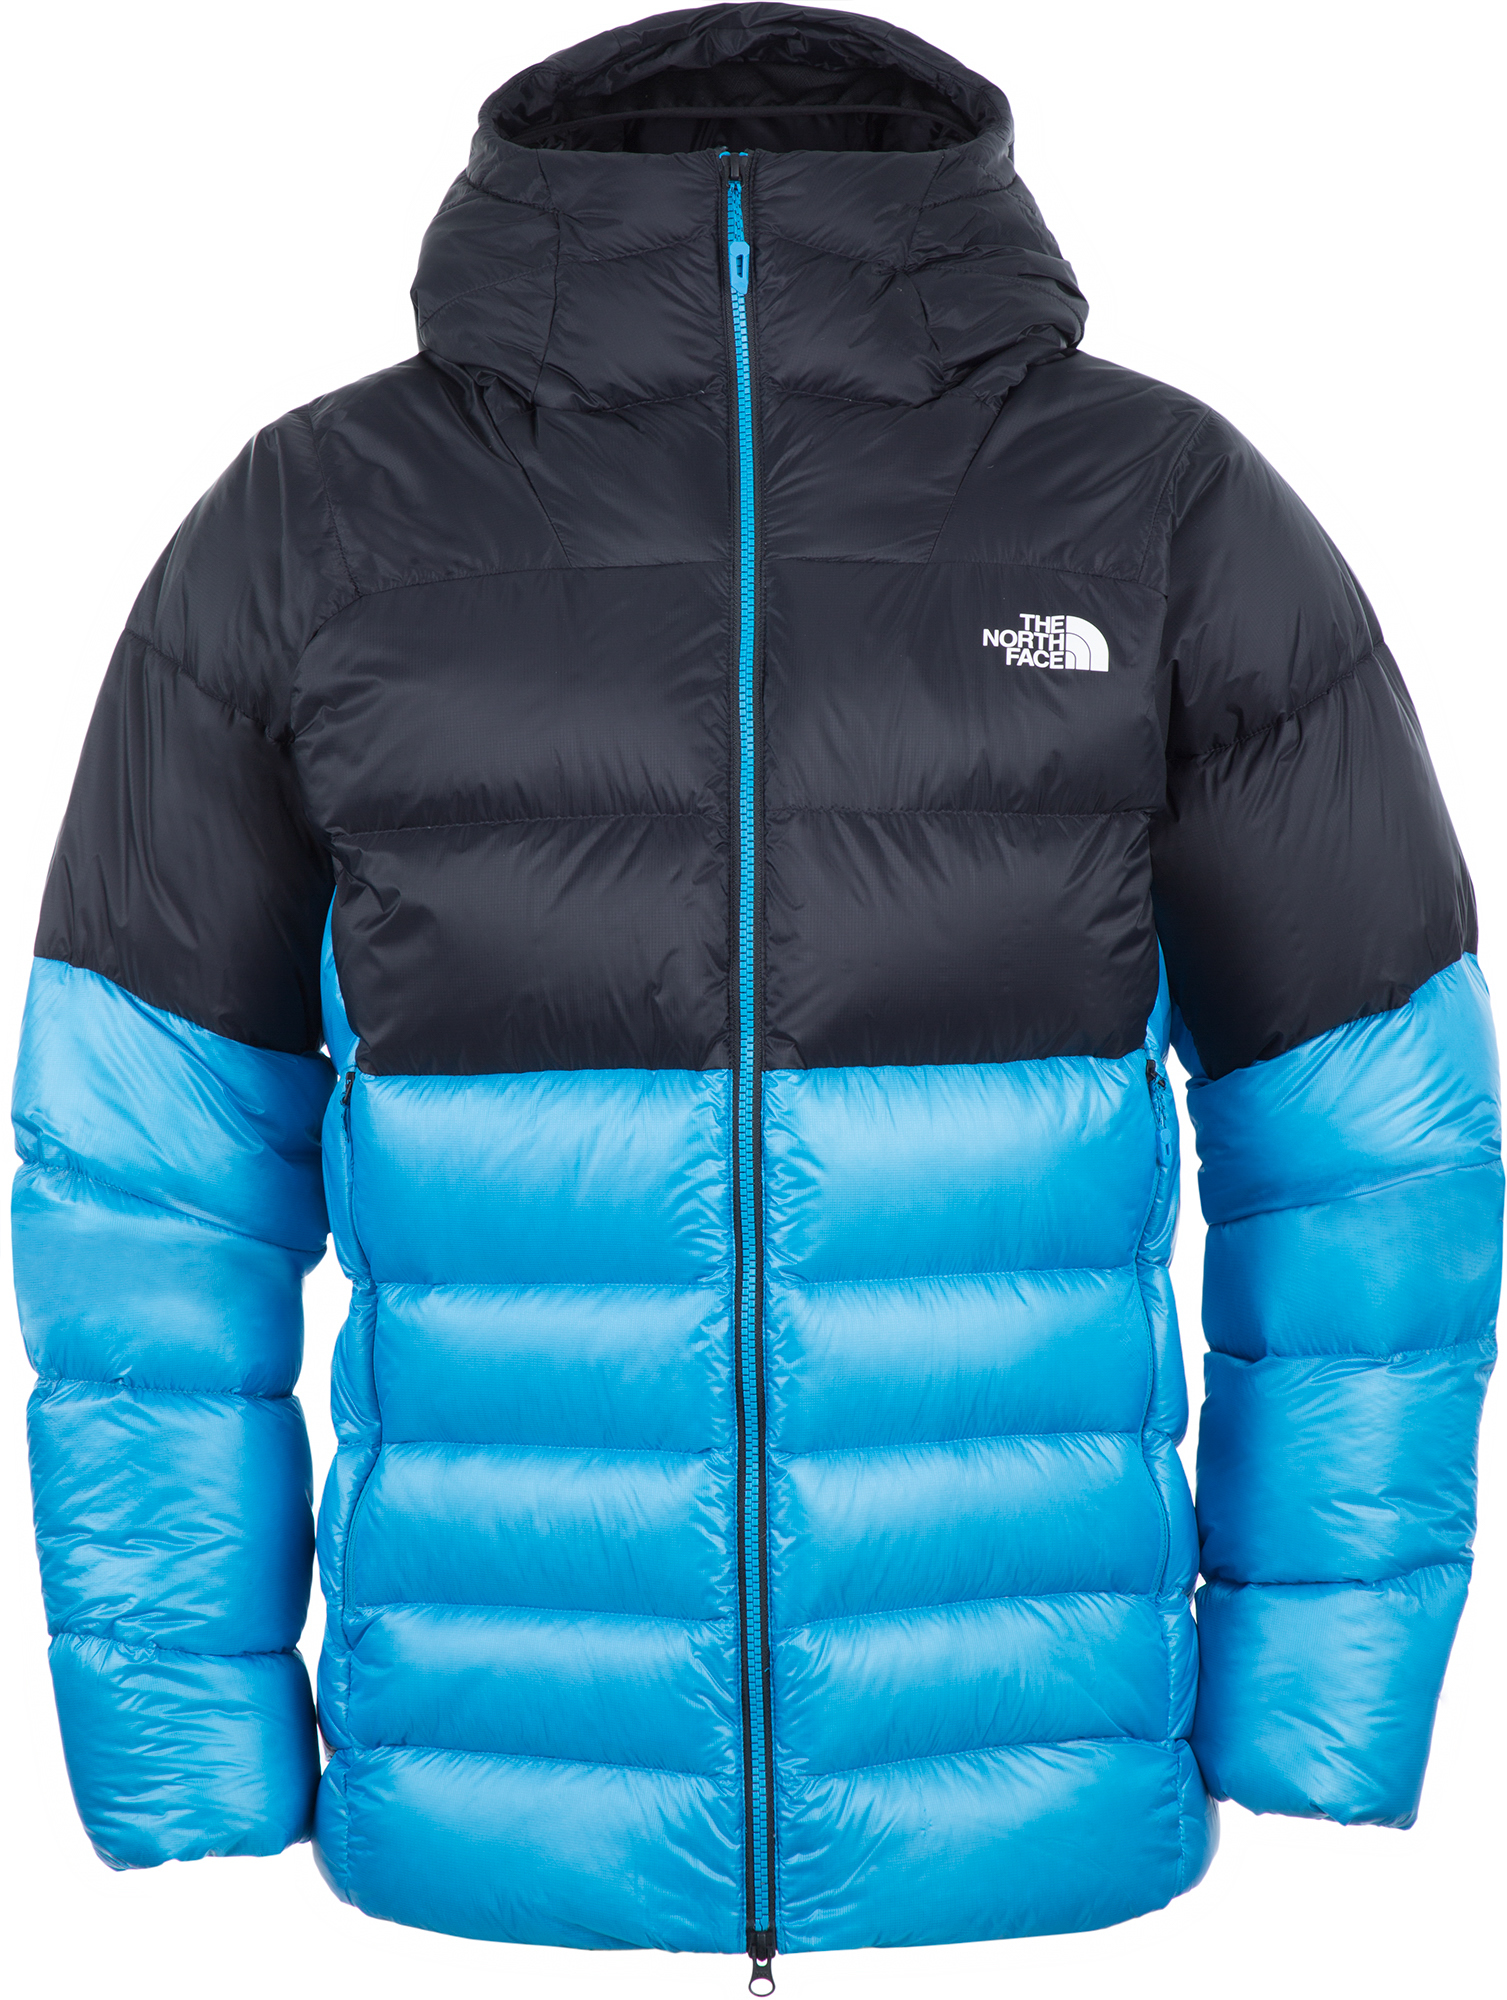 The North Face Куртка пуховая мужская The North Face Impendor Pro, размер 52